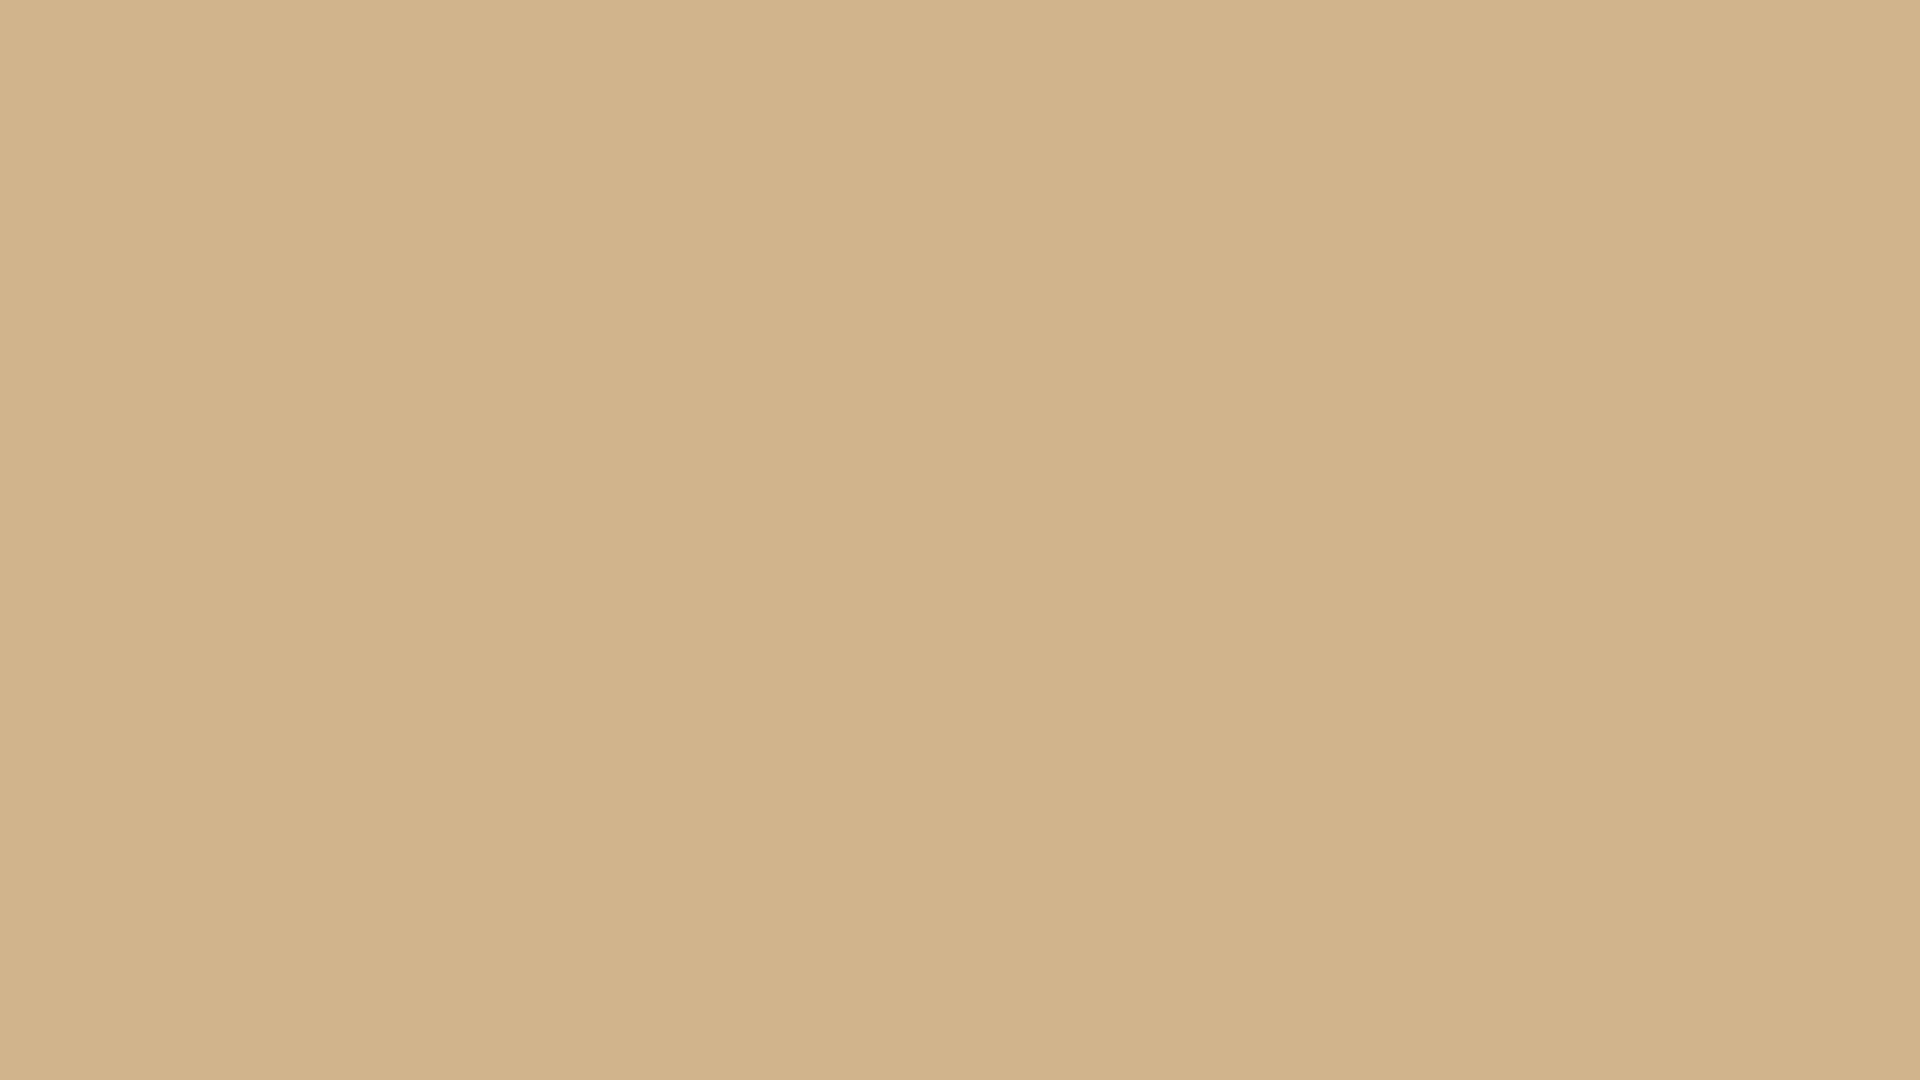 1920x1080 Tan Solid Color Background